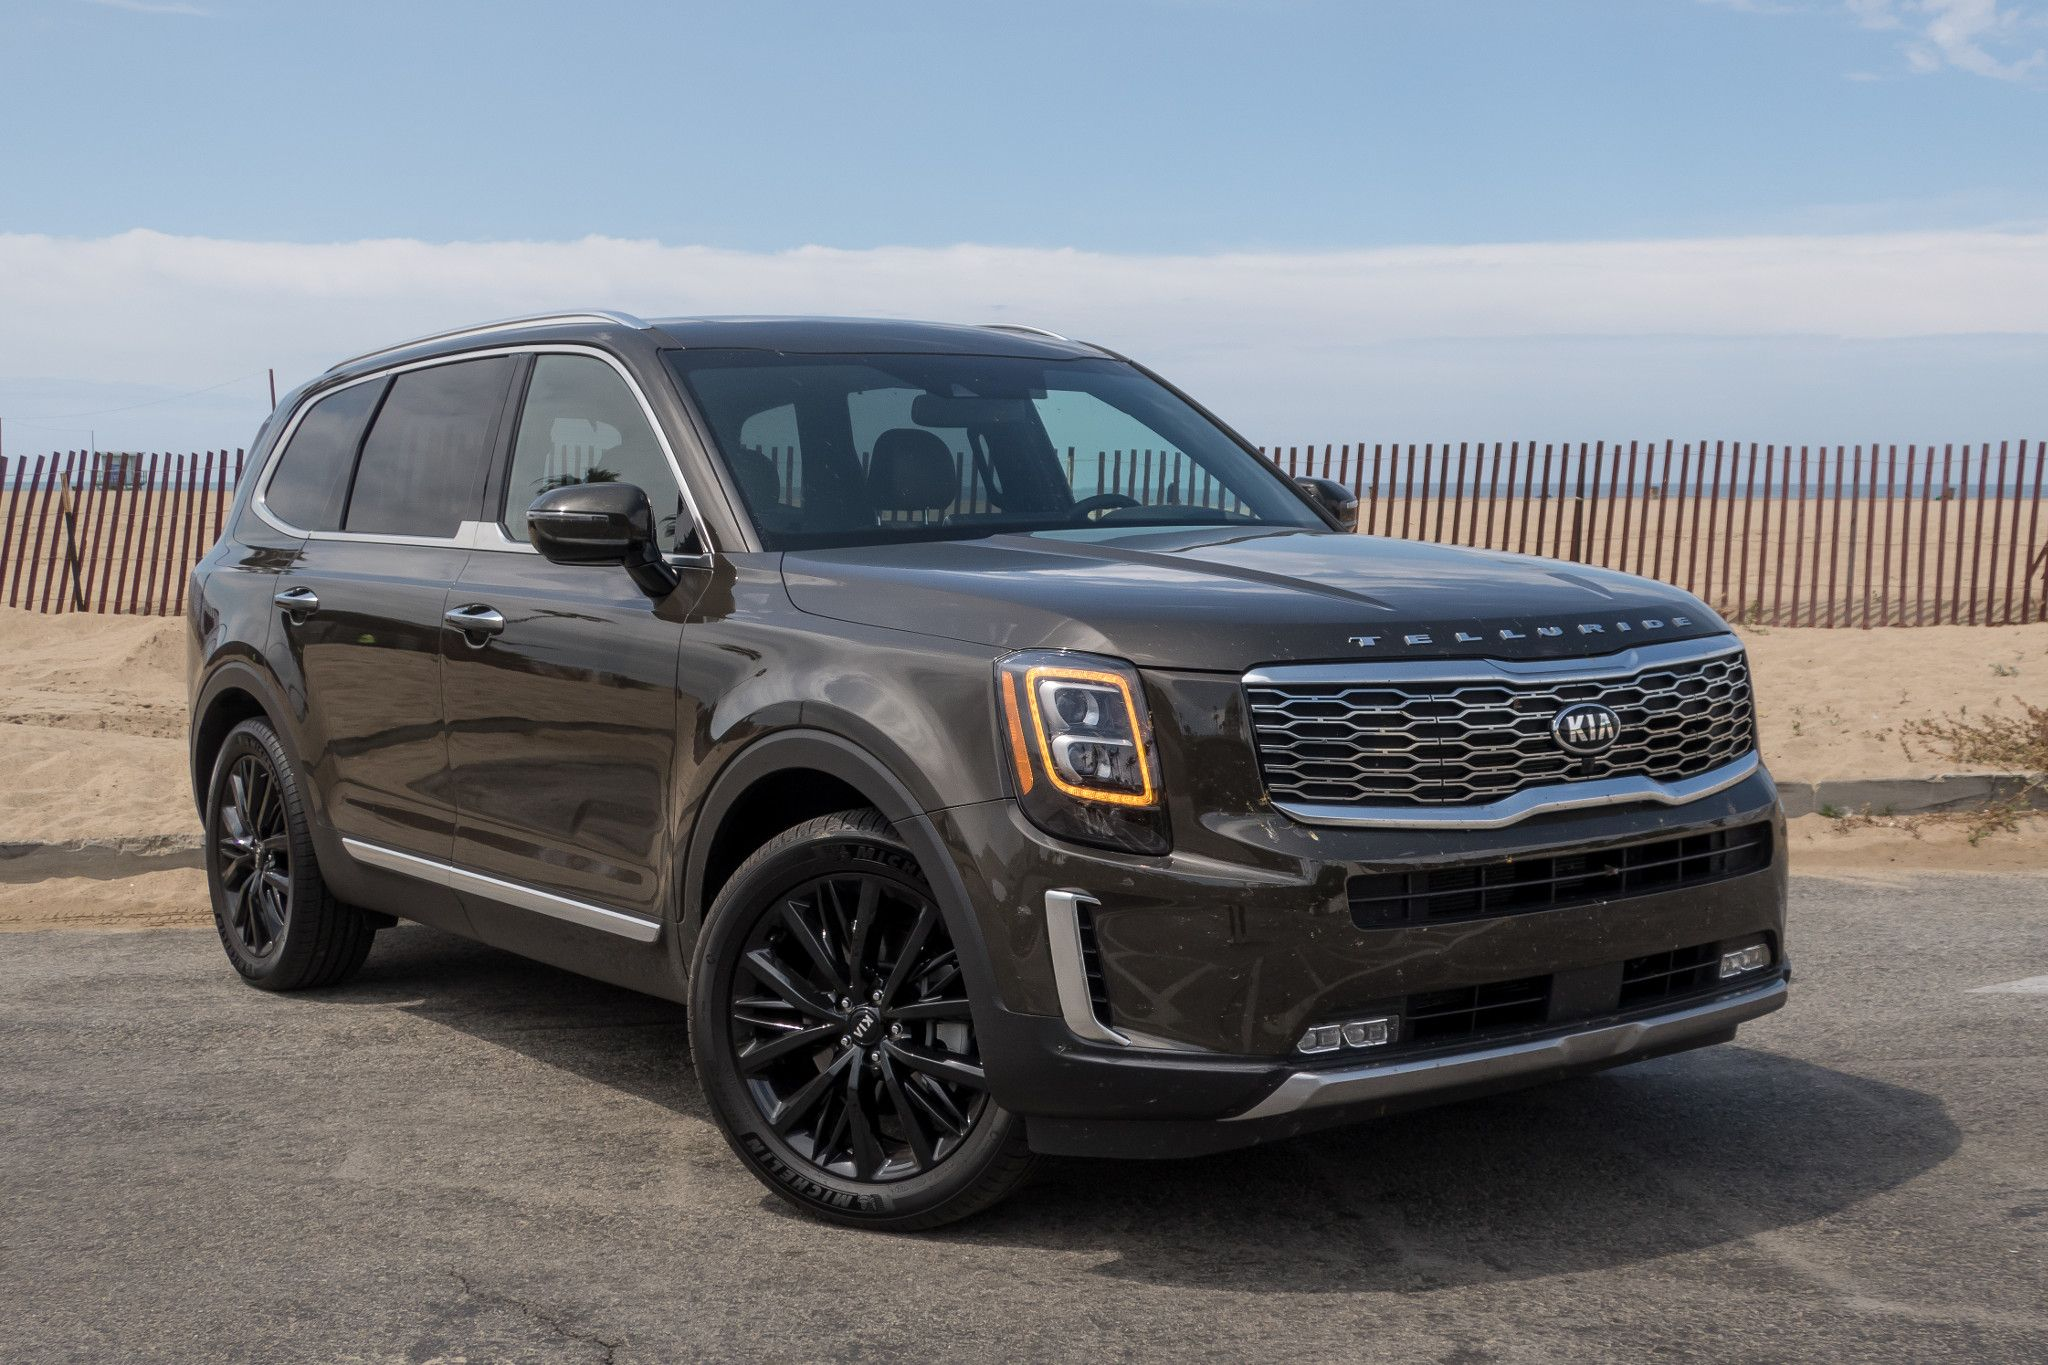 2020 Kia Telluride 6 Things We Like And 2 Not So Much News From Cars Com In 2020 Large Suv Kia Suv